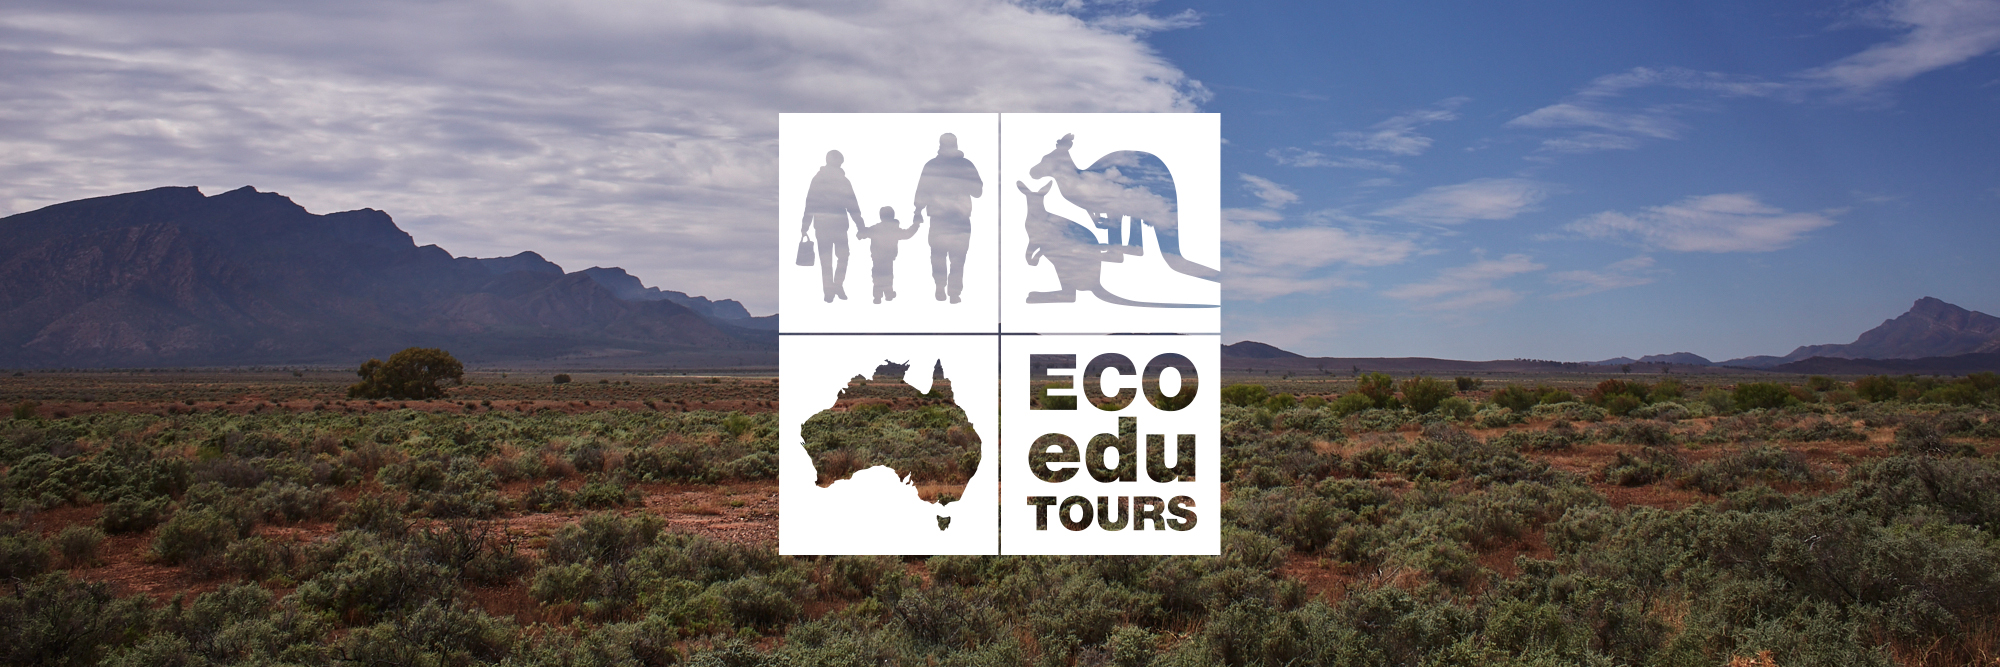 eco edu tours